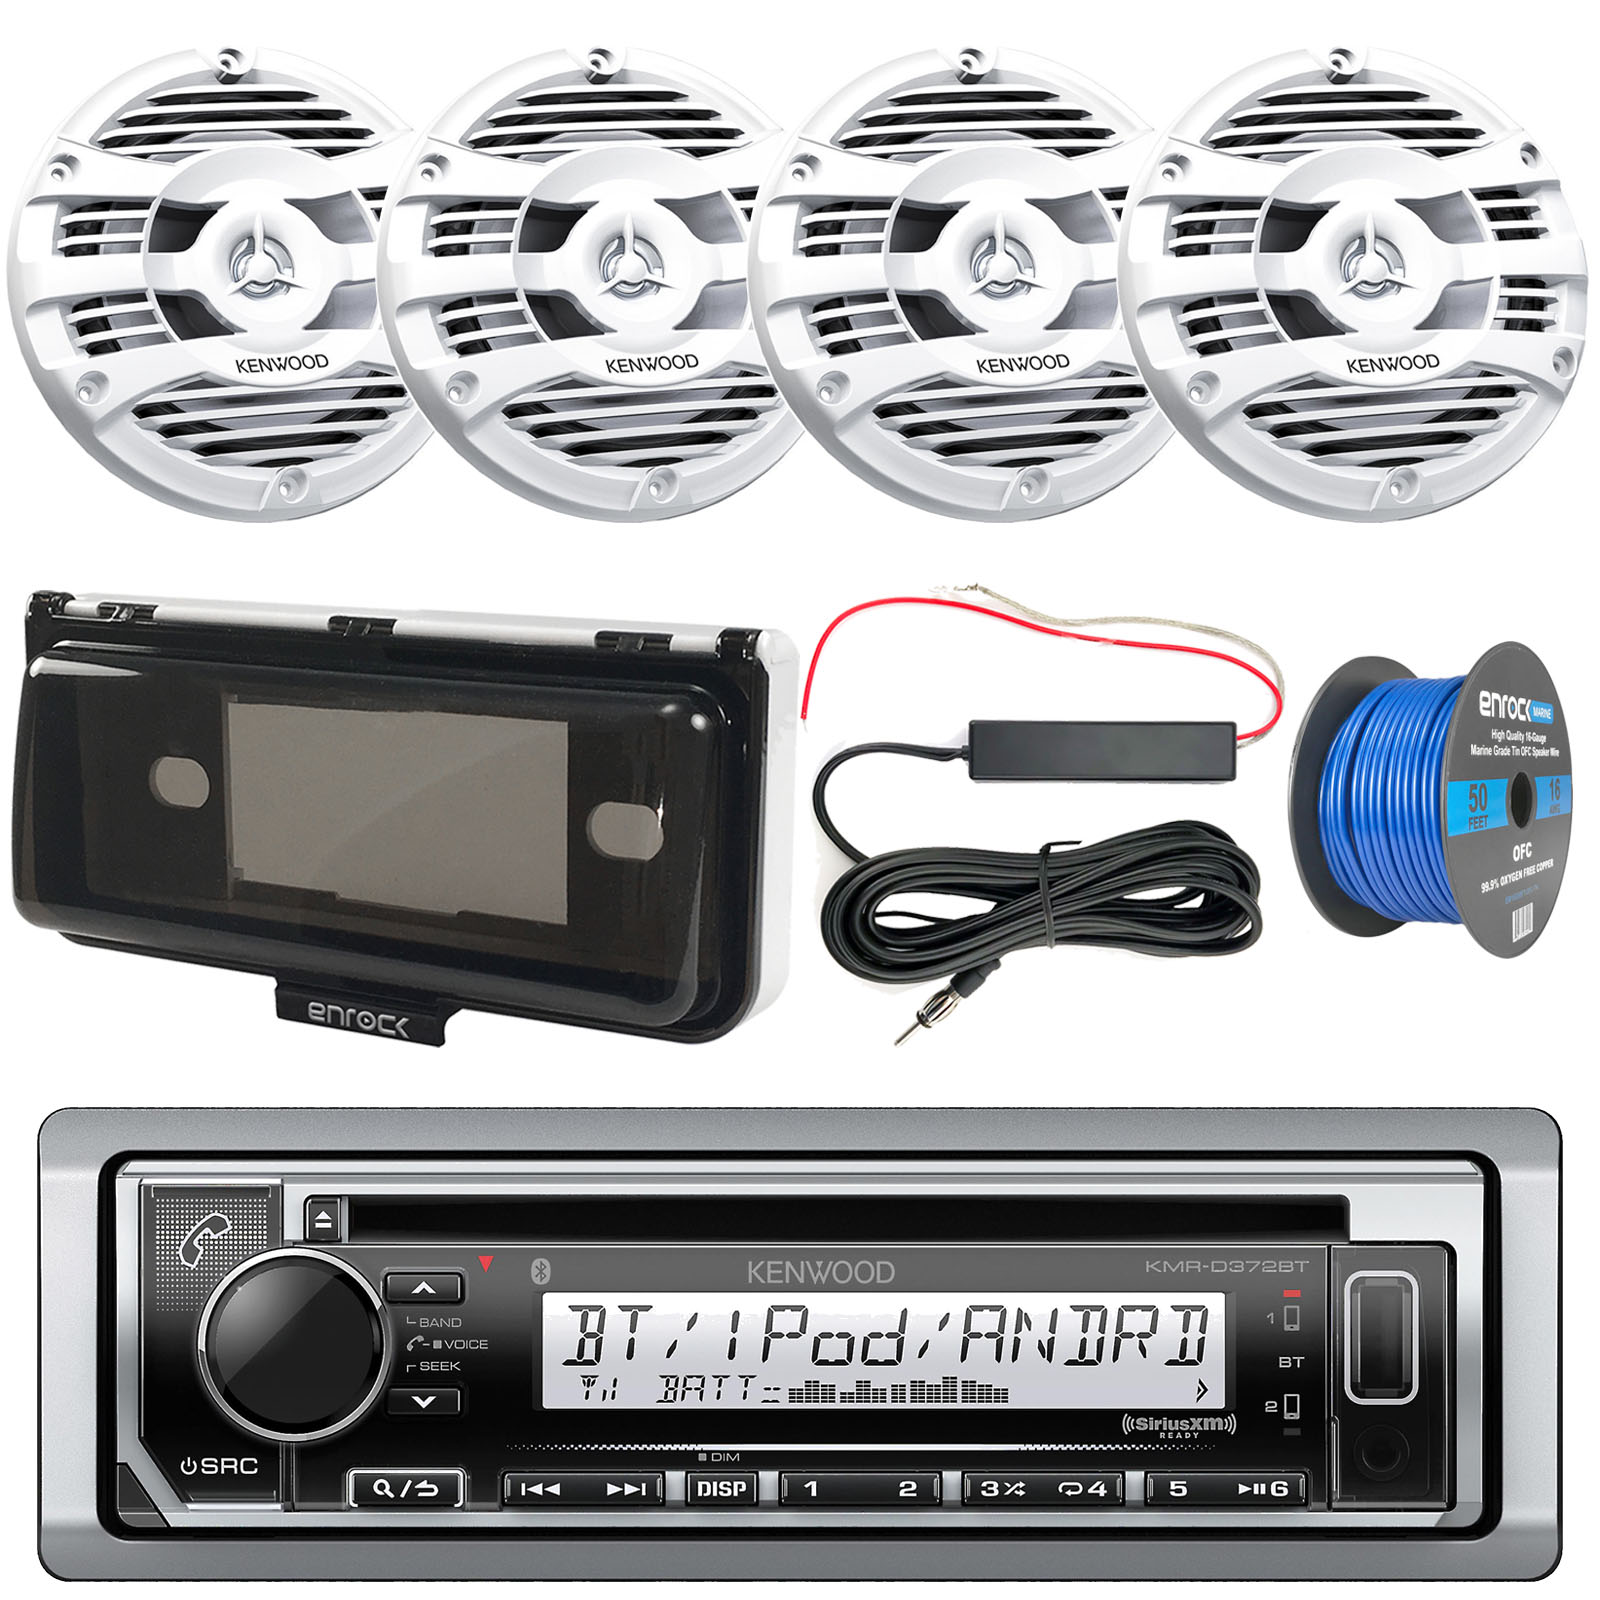 "Bay Boat Audio Package: Kenwood KMRD372BT Marine CD Bluetooth Receiver, 4x Kenwood KFC1653MRW 6.5"" 2 Way Marine Speakers (White), Radio Cover, 12 Volt Amp Booster Kit, 50 Foot 16-G Tinned Speaker Wire"